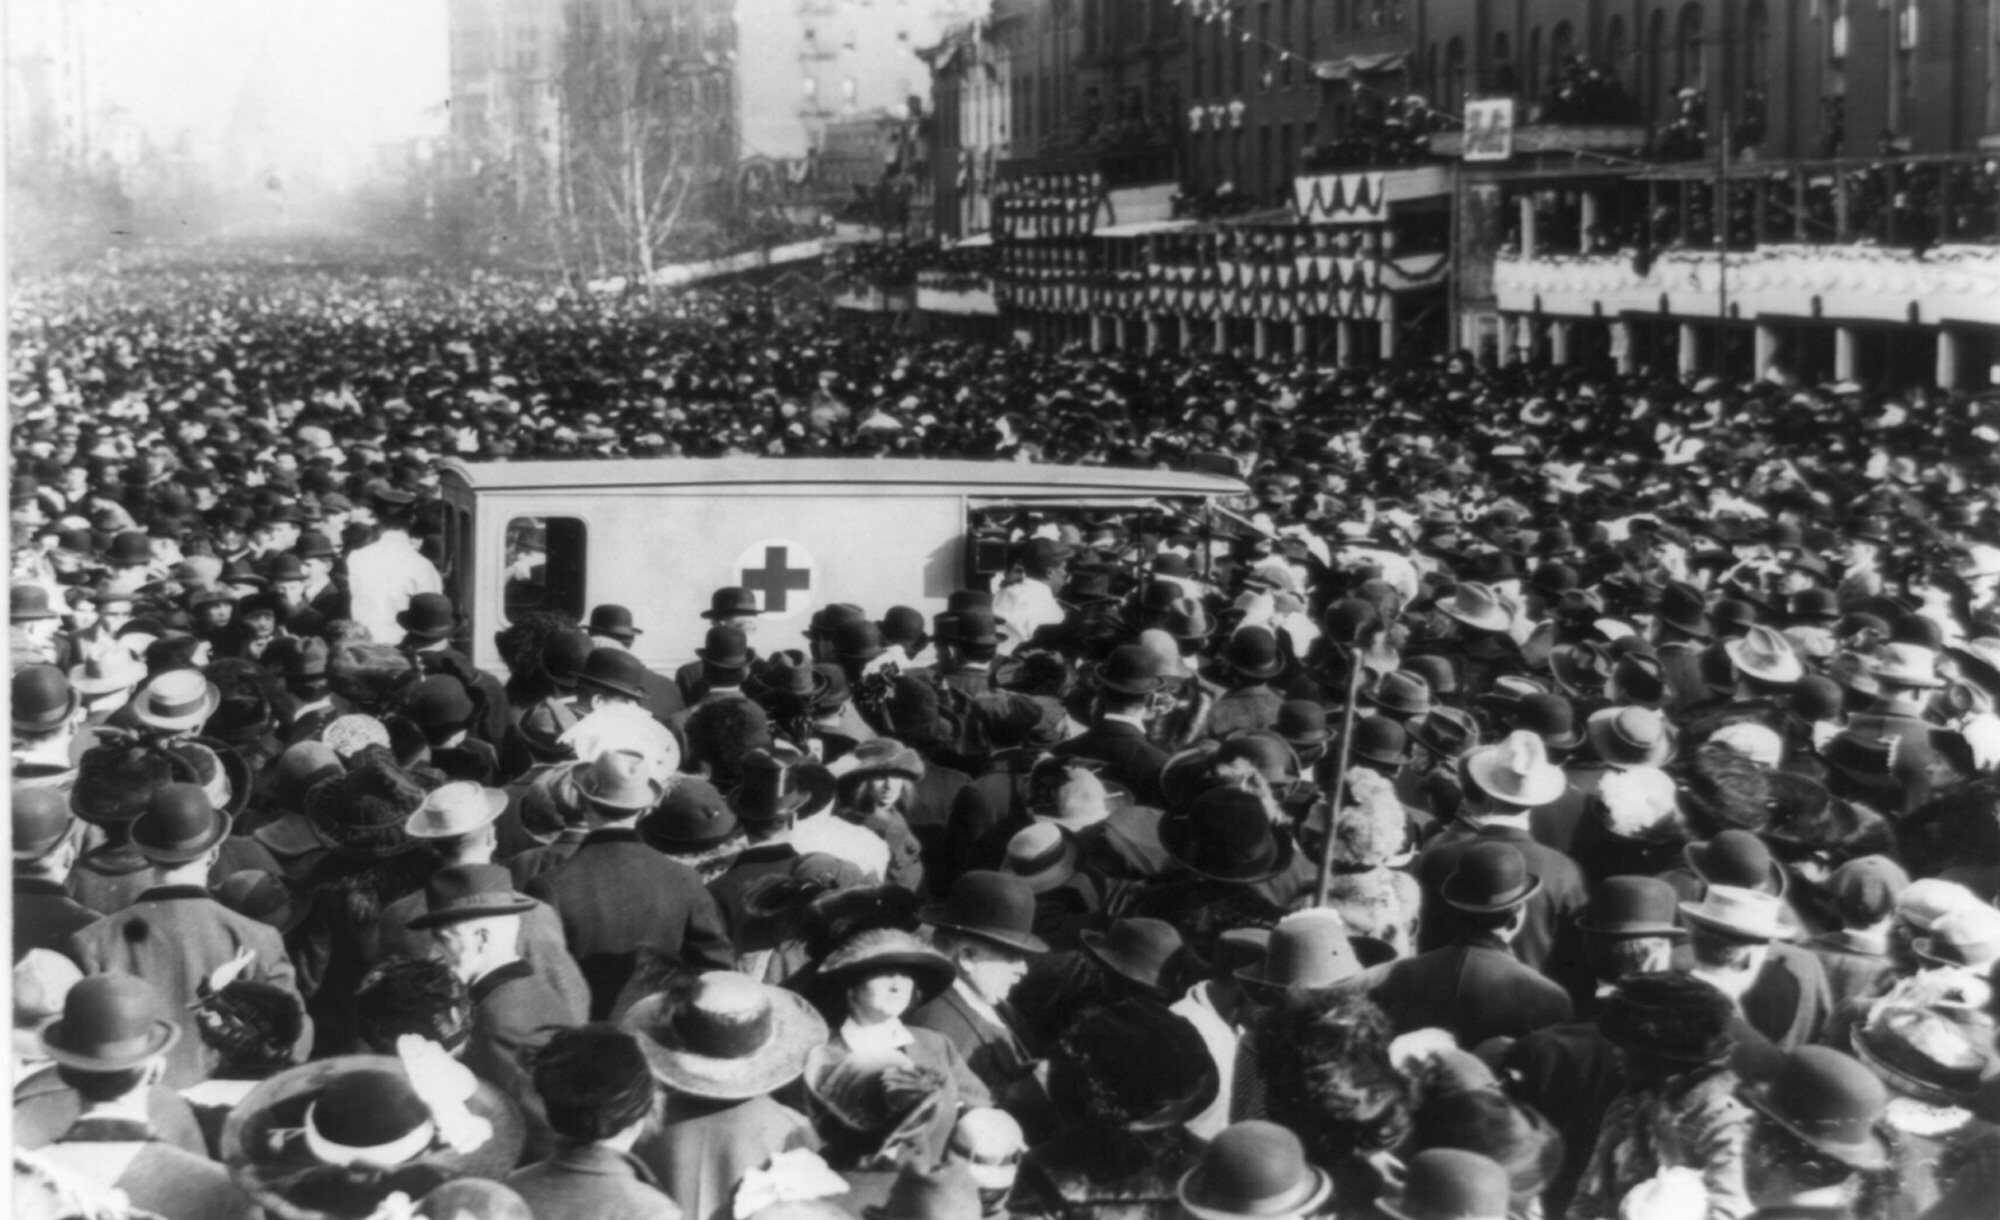 TR-JohnGable-Feature-Women's-suffrage-procession-in-Washington,-D.C.-1913,-March-3,-crowd-around-Red-Cross-ambulance-LOC.jpg